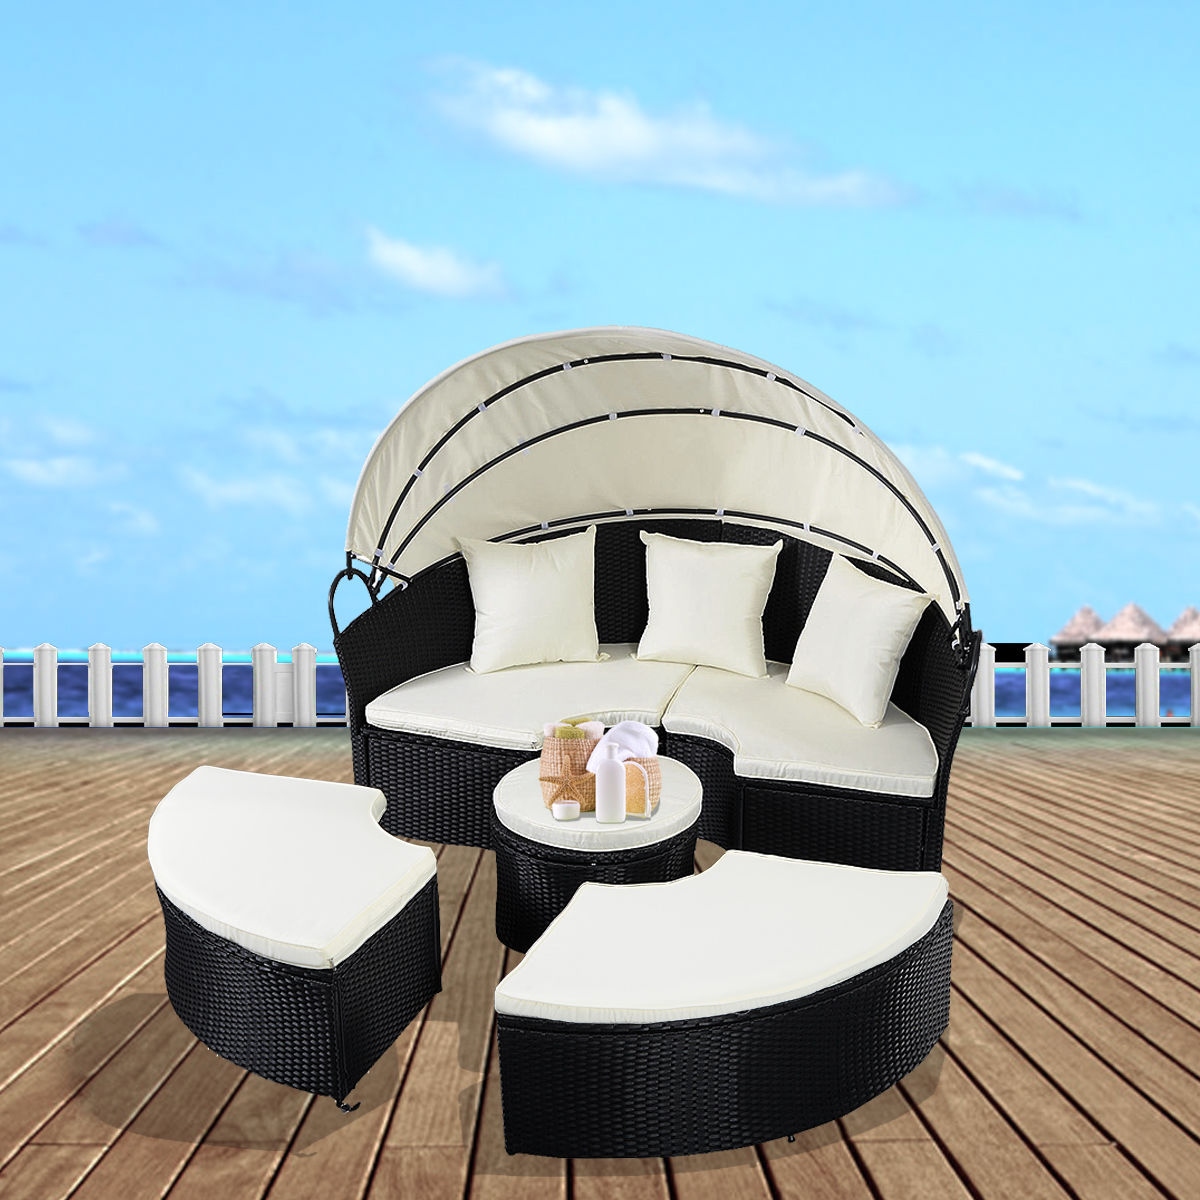 Costway Day Bed Patio Sofa Furniture Round Retractable Canopy Wicker Rattan Outdoor by Costway